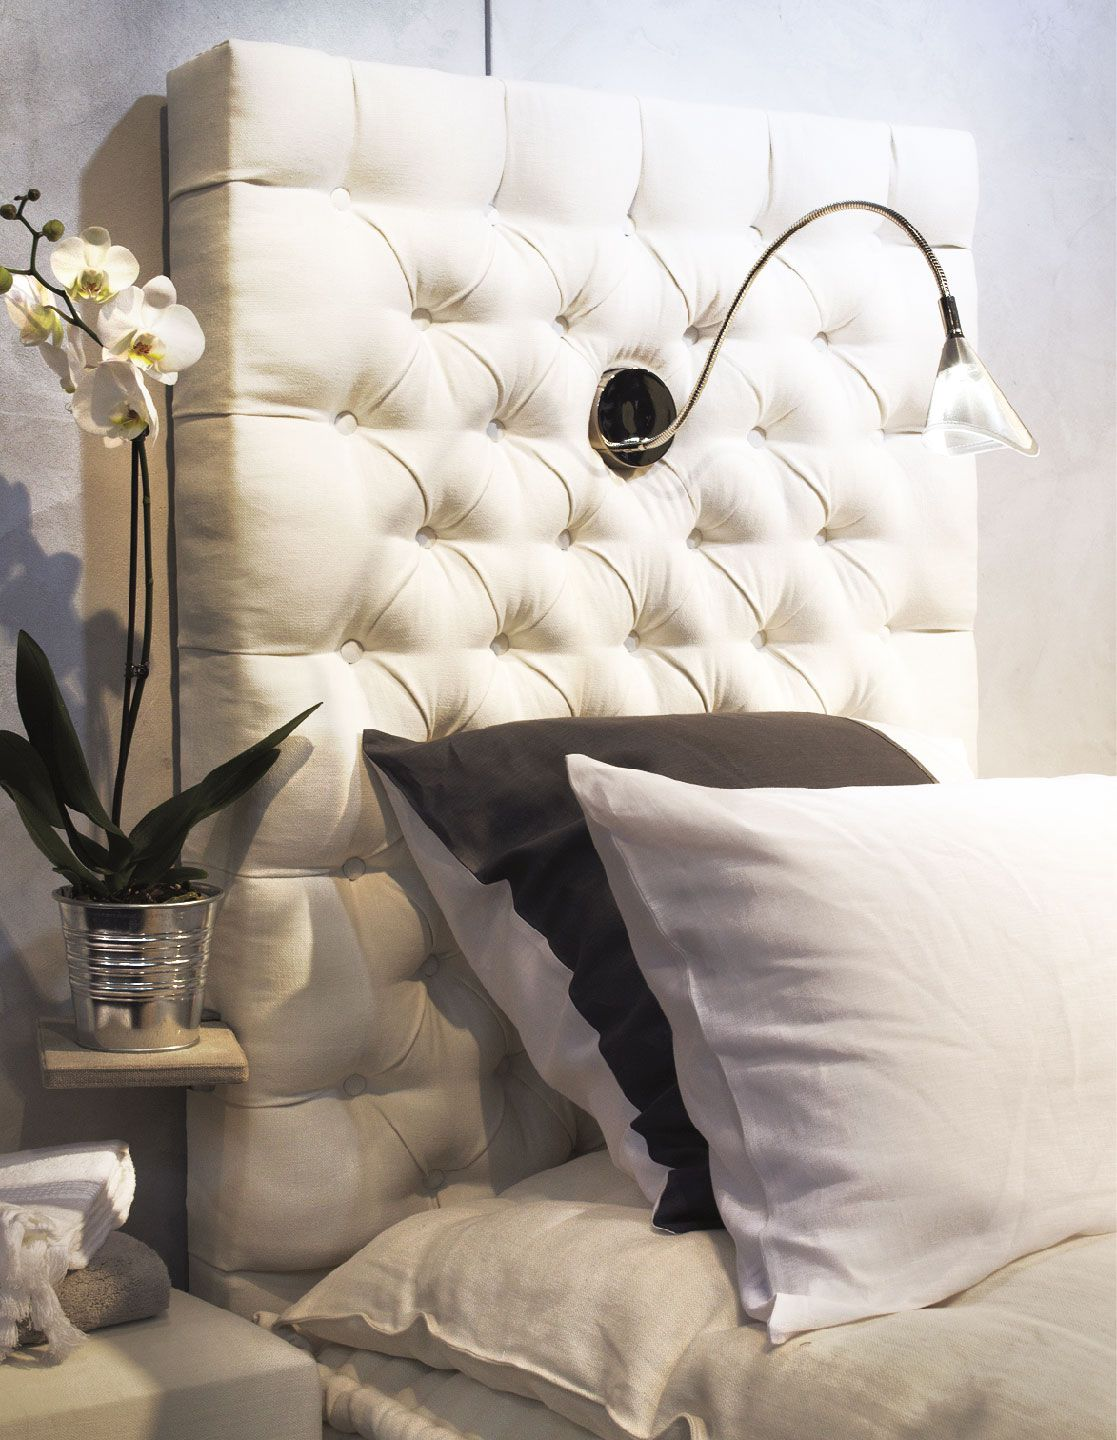 Come Discover Le Lit National To The Next 1 618 Sustainable Luxury Event In Paris April 4 To 6 Lit Interieur Maison